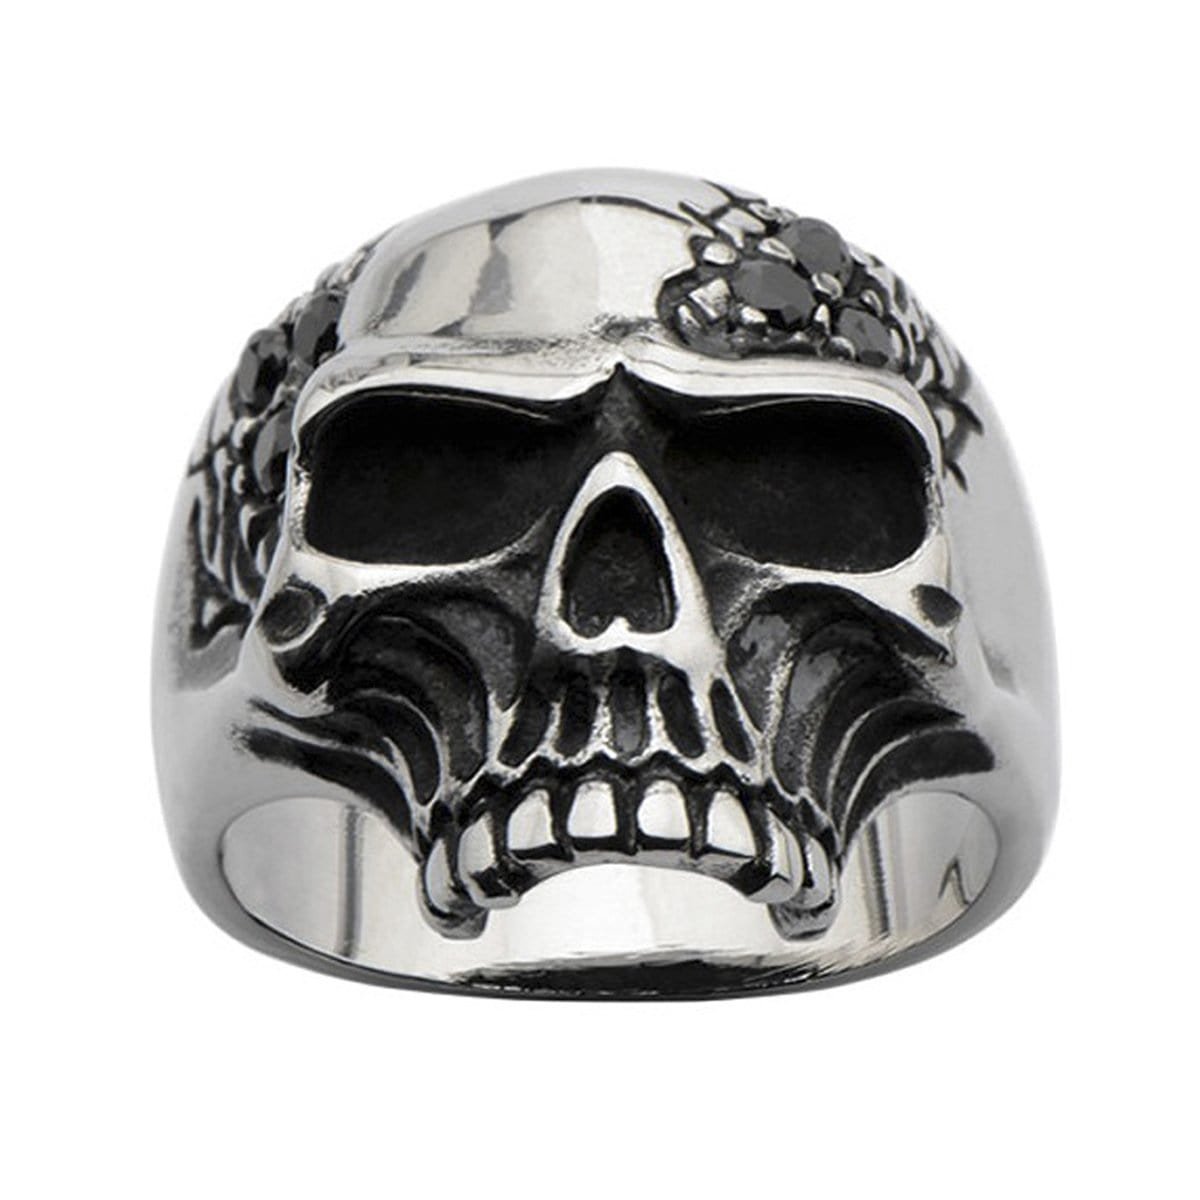 Darkened Silver Stainless Steel Half Skull with Black CZ Ring Rings